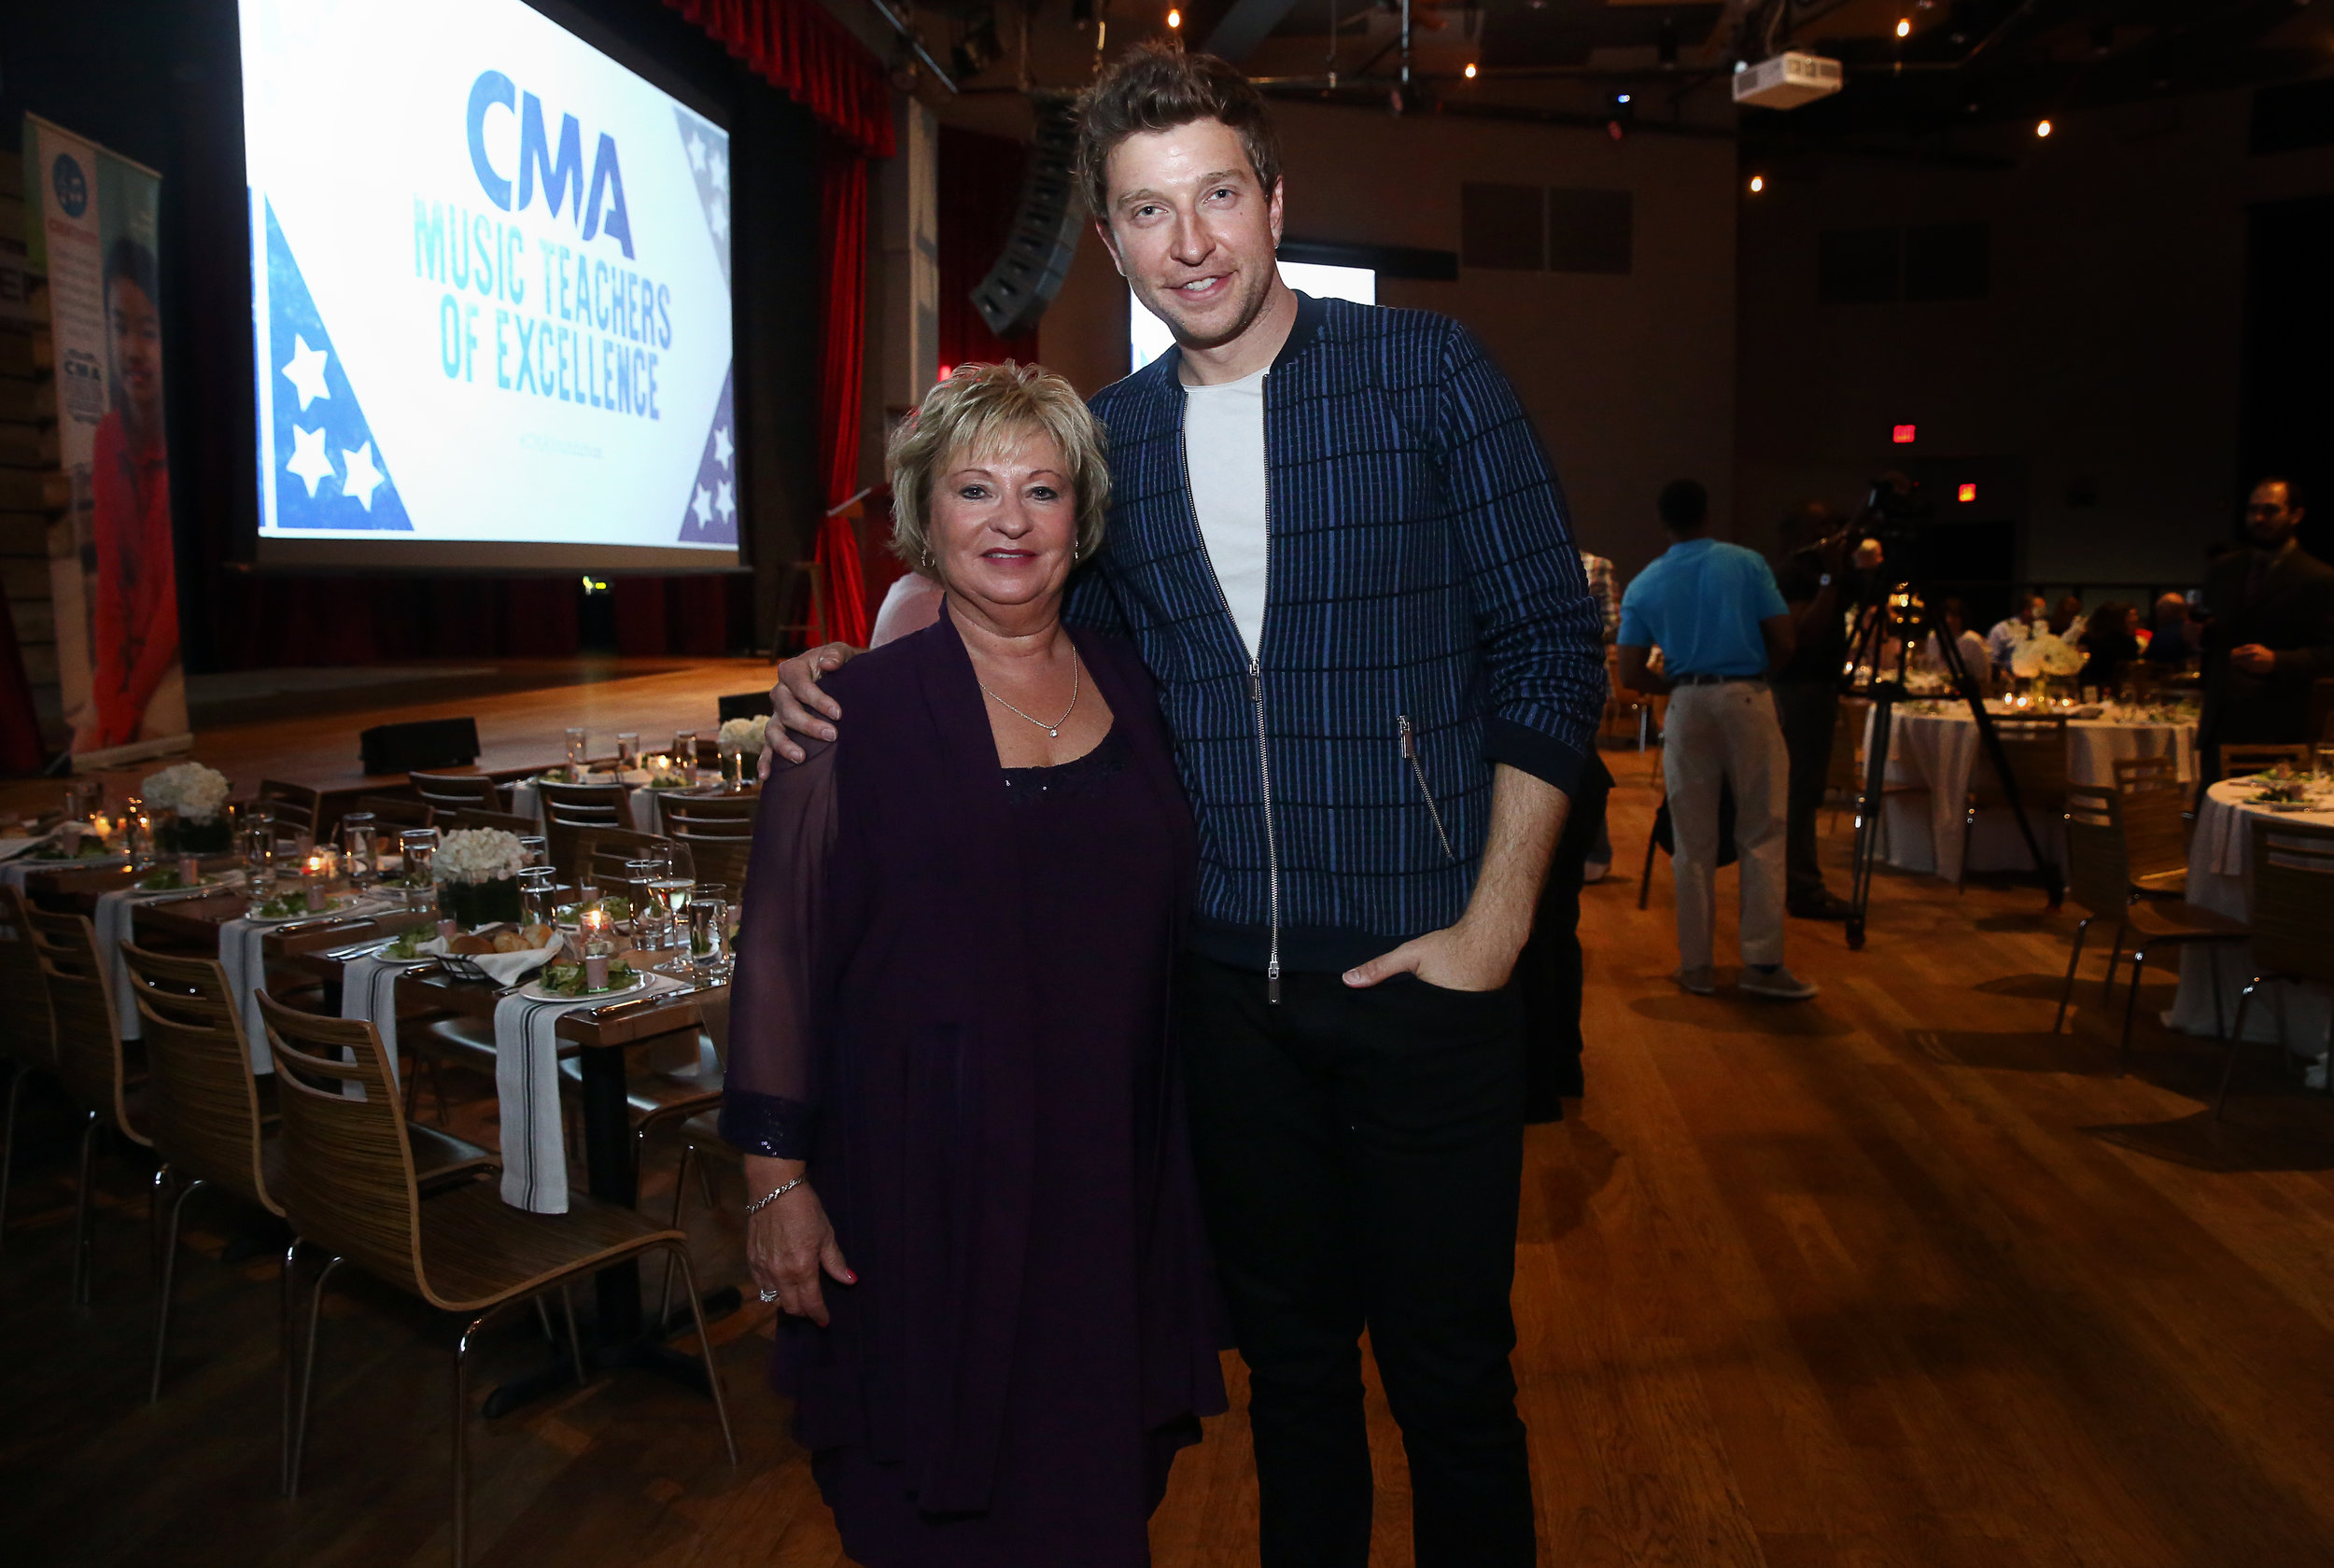 Brett Eldredge, host of the CMA Music Teacher of Excellence, welcomes his own childhood music teacher, Judy Carroll, as his special guest at the inaugural honors evening at City Winery Tuesday in Nashville. Photo Credit: Kayla Schoen / CMA